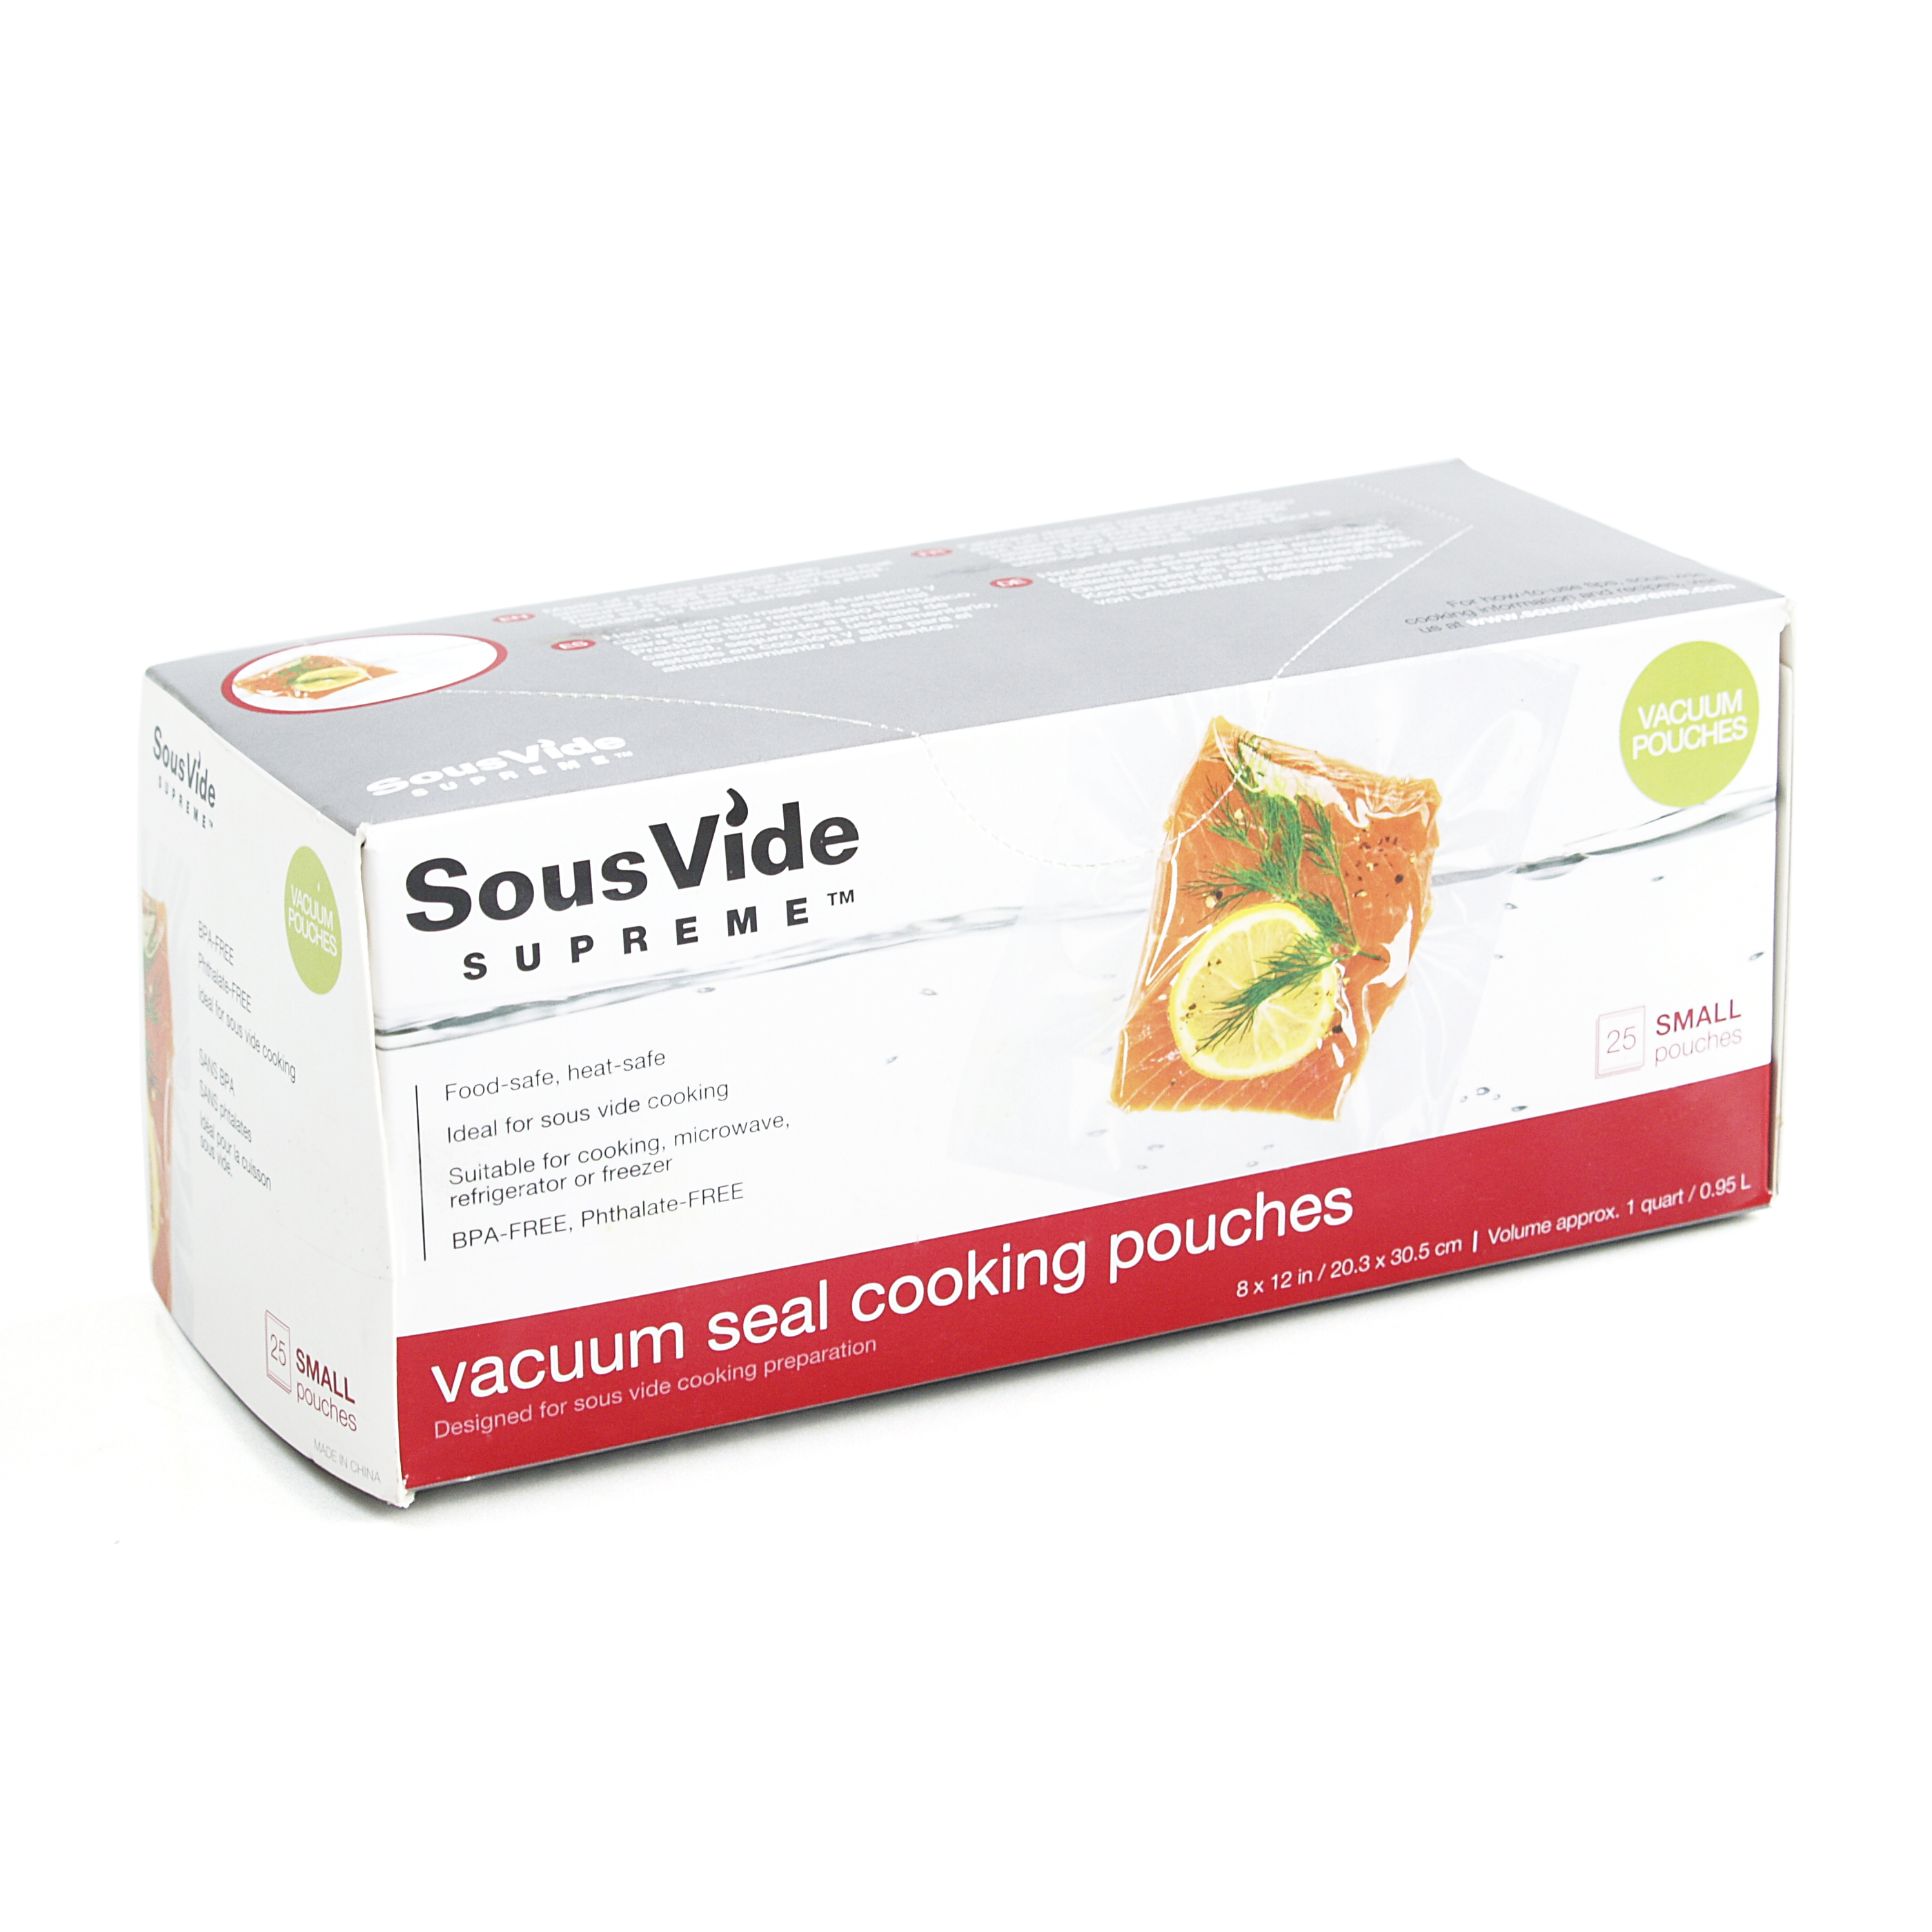 SousVide Supreme Small 1 Quart Vacuum Seal Cooking Pouches